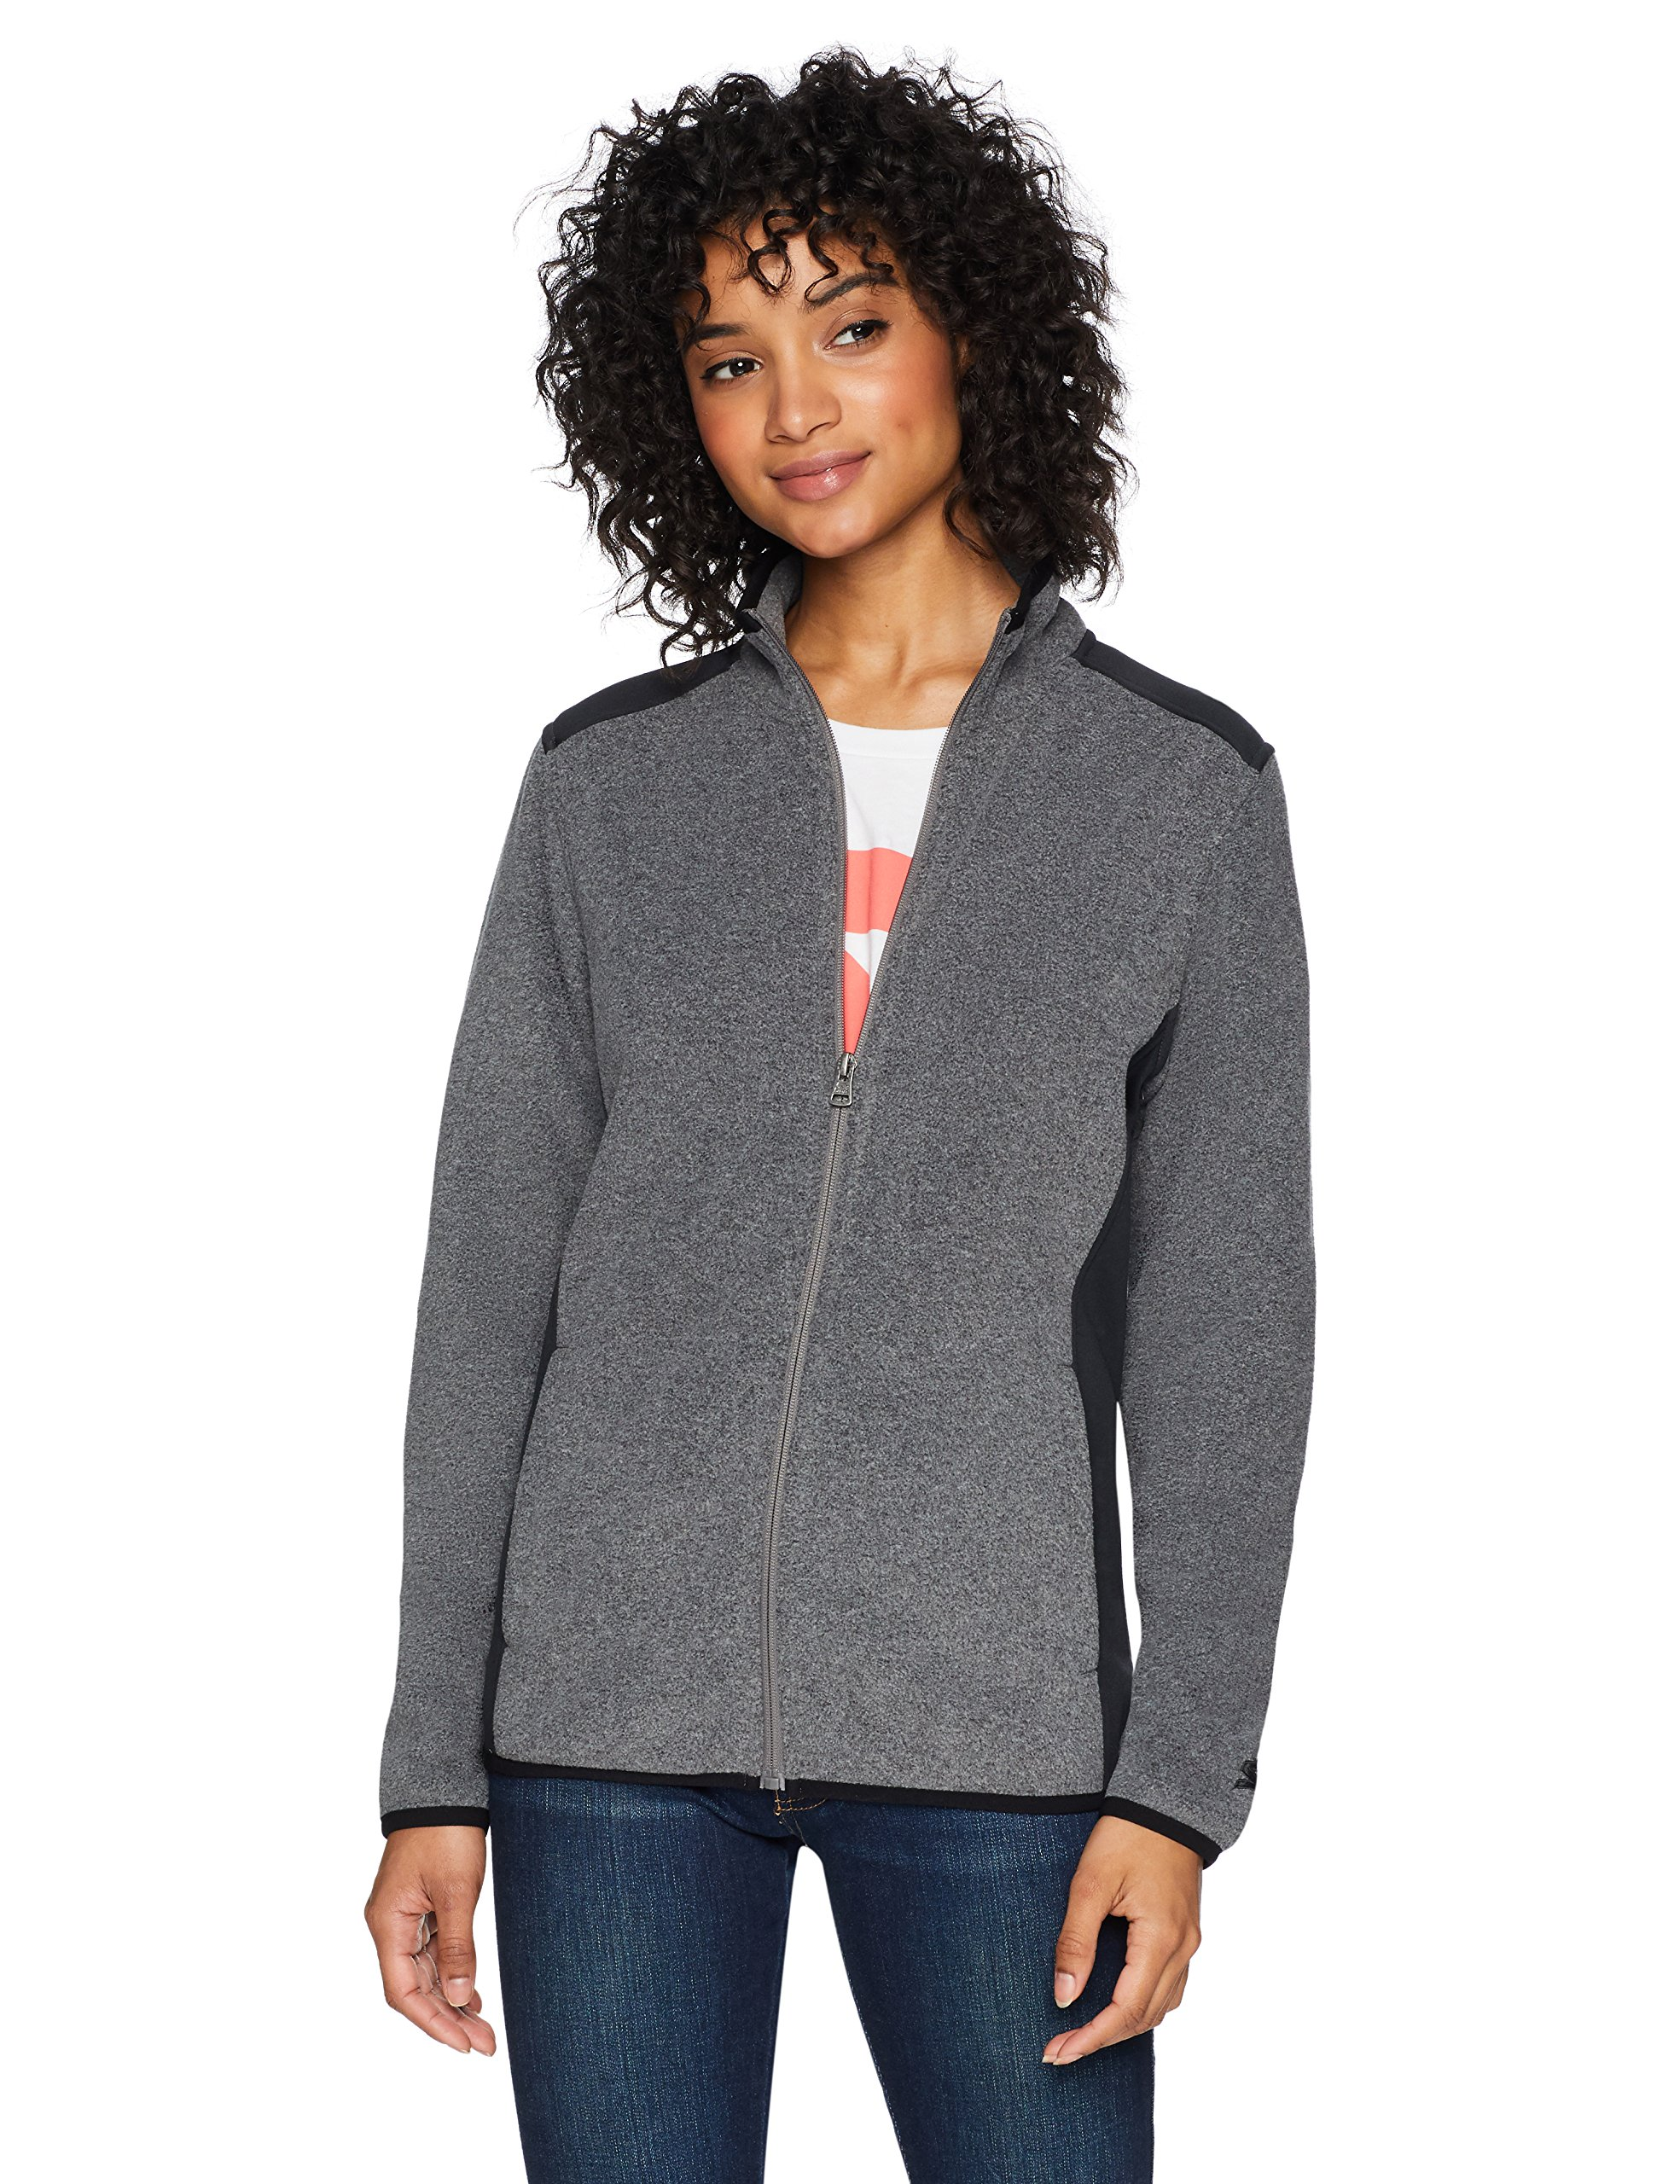 Starter Women's Polar Fleece Jacket, Prime Exclusive, Vapor Grey Heather, Extra Large